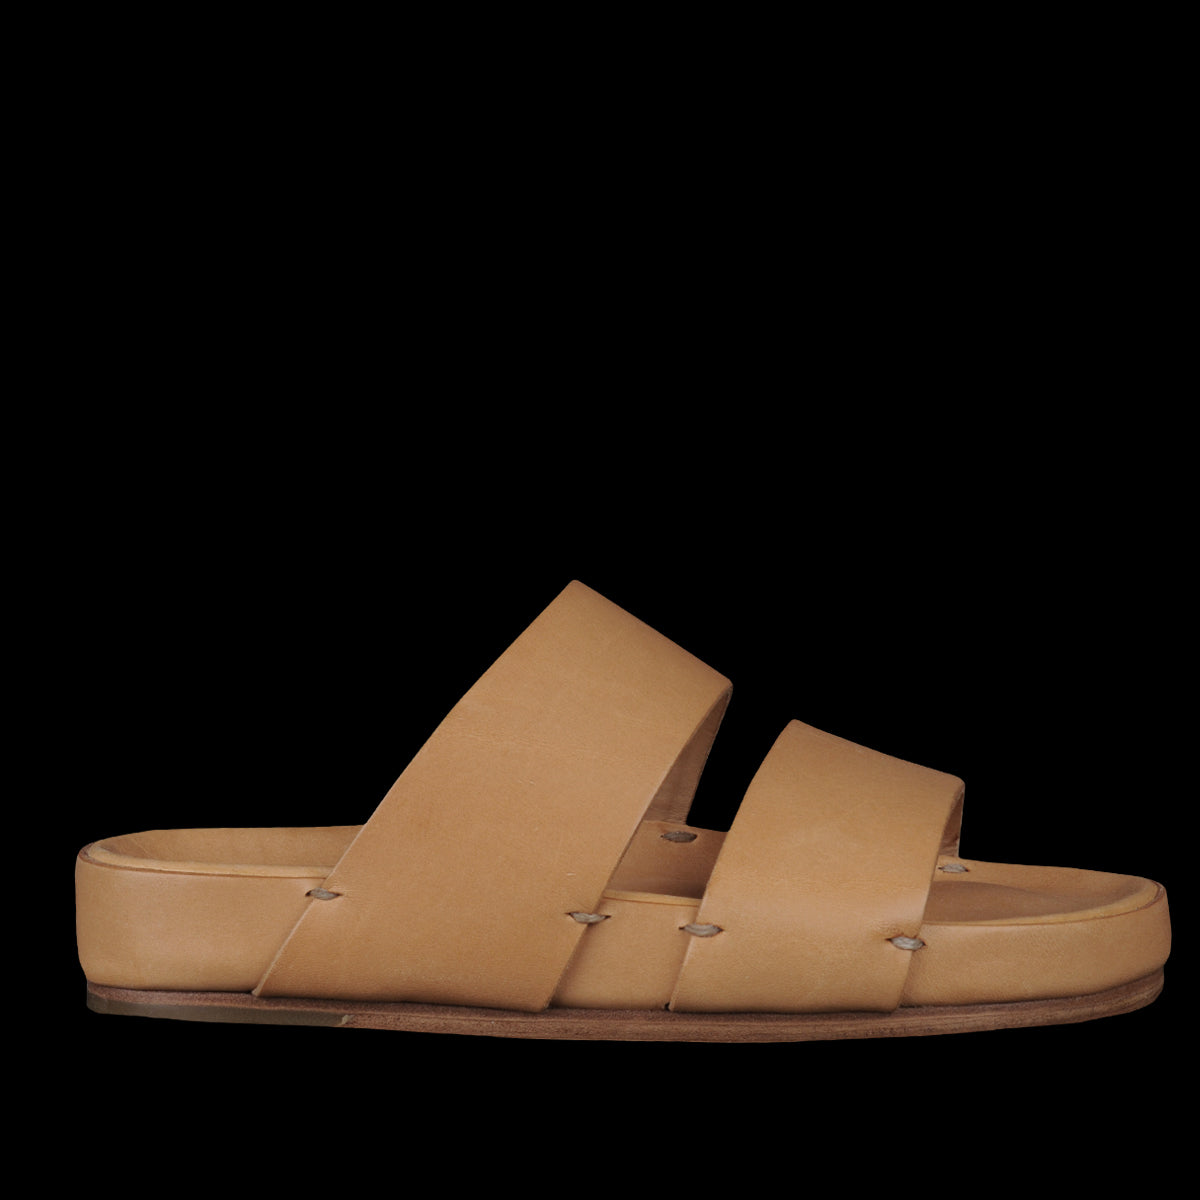 42b3d8d6631f Feit - W Sandal in Natural - UNIONMADE